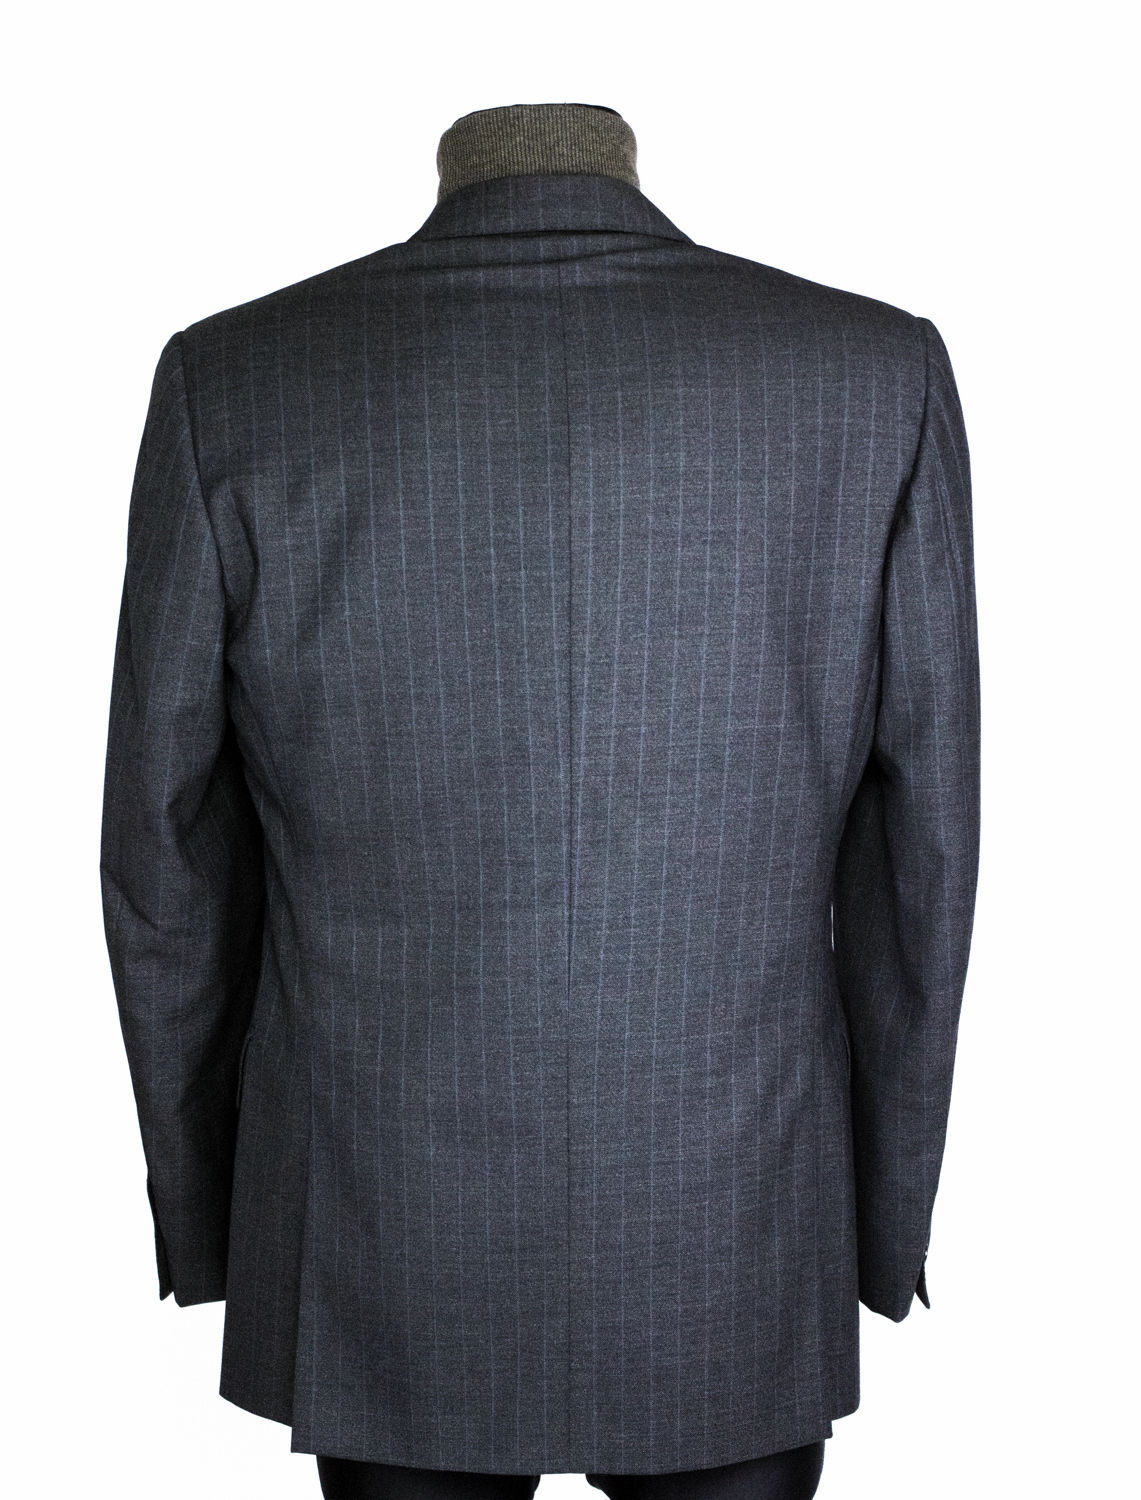 CORNELIANI Super 100's Extrafine Merino Wool 3 Buttons Blazer US 46R, EU 56R - secondfirst